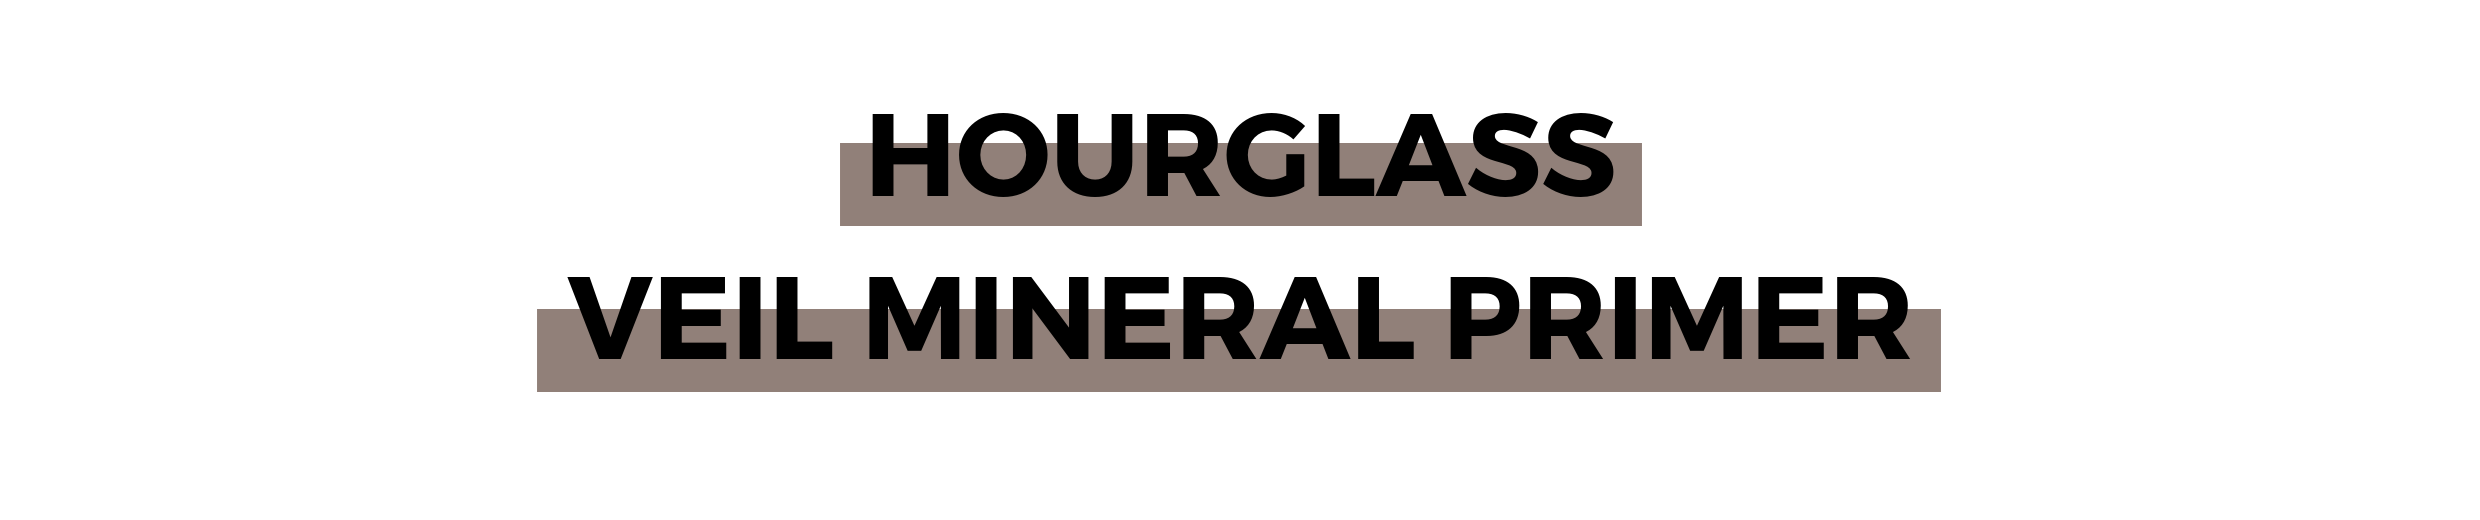 HOURGLASS VEIL MINERAL PRIMER (1).png